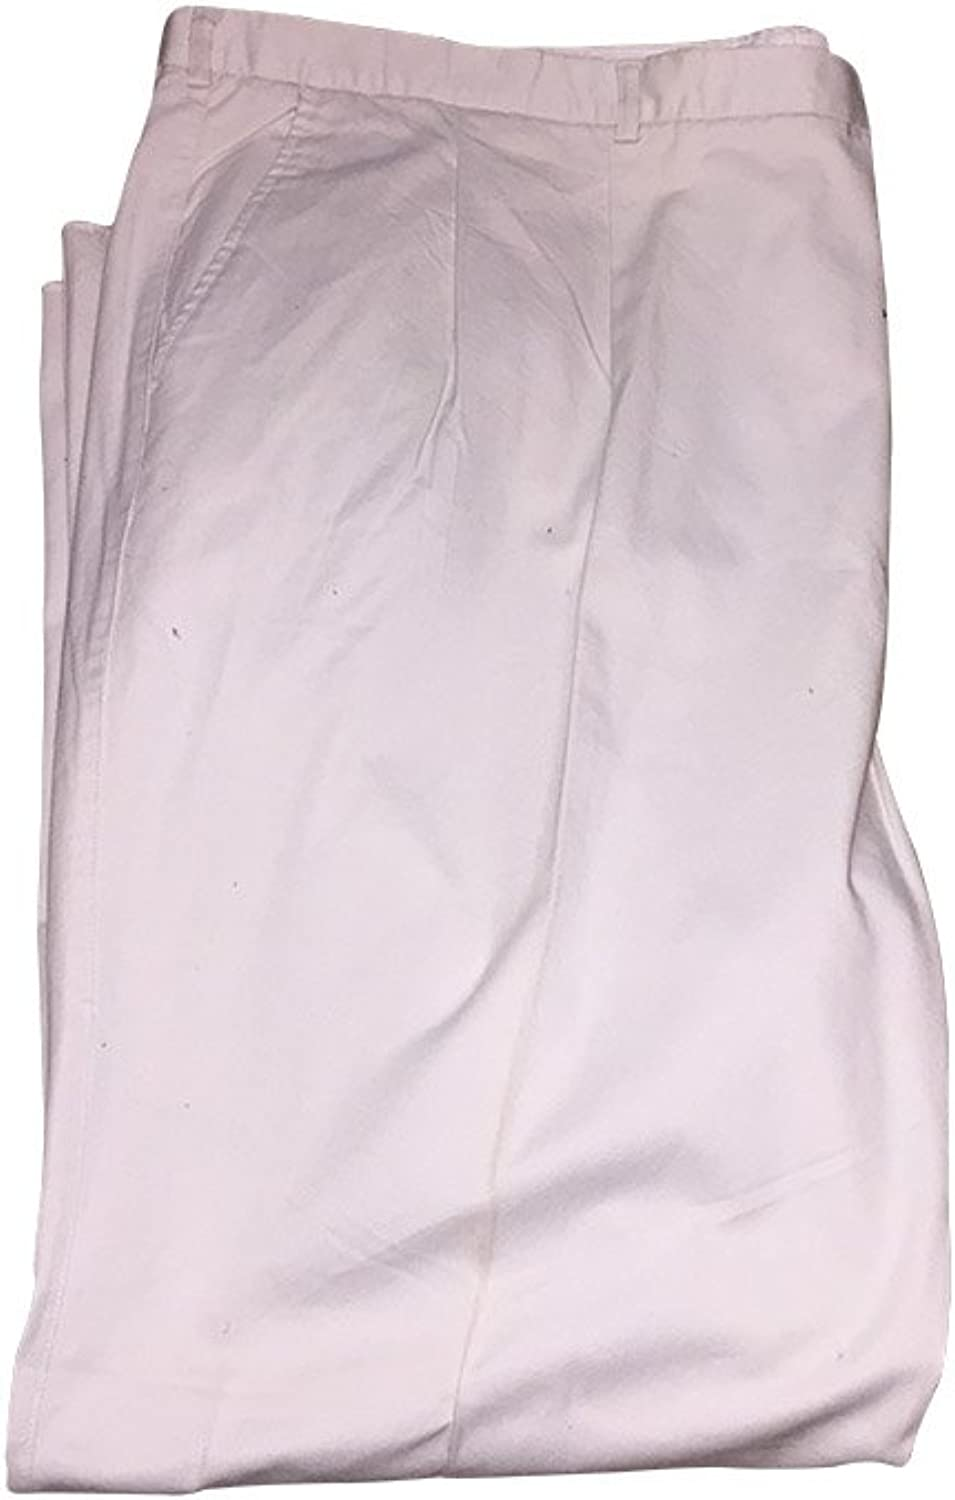 27f3a2c1e6 Size 60 Pleated Friday Britches Britches Britches Big and Tall Khaki Casual  Pants (Size 60, Stone) 3ab69e